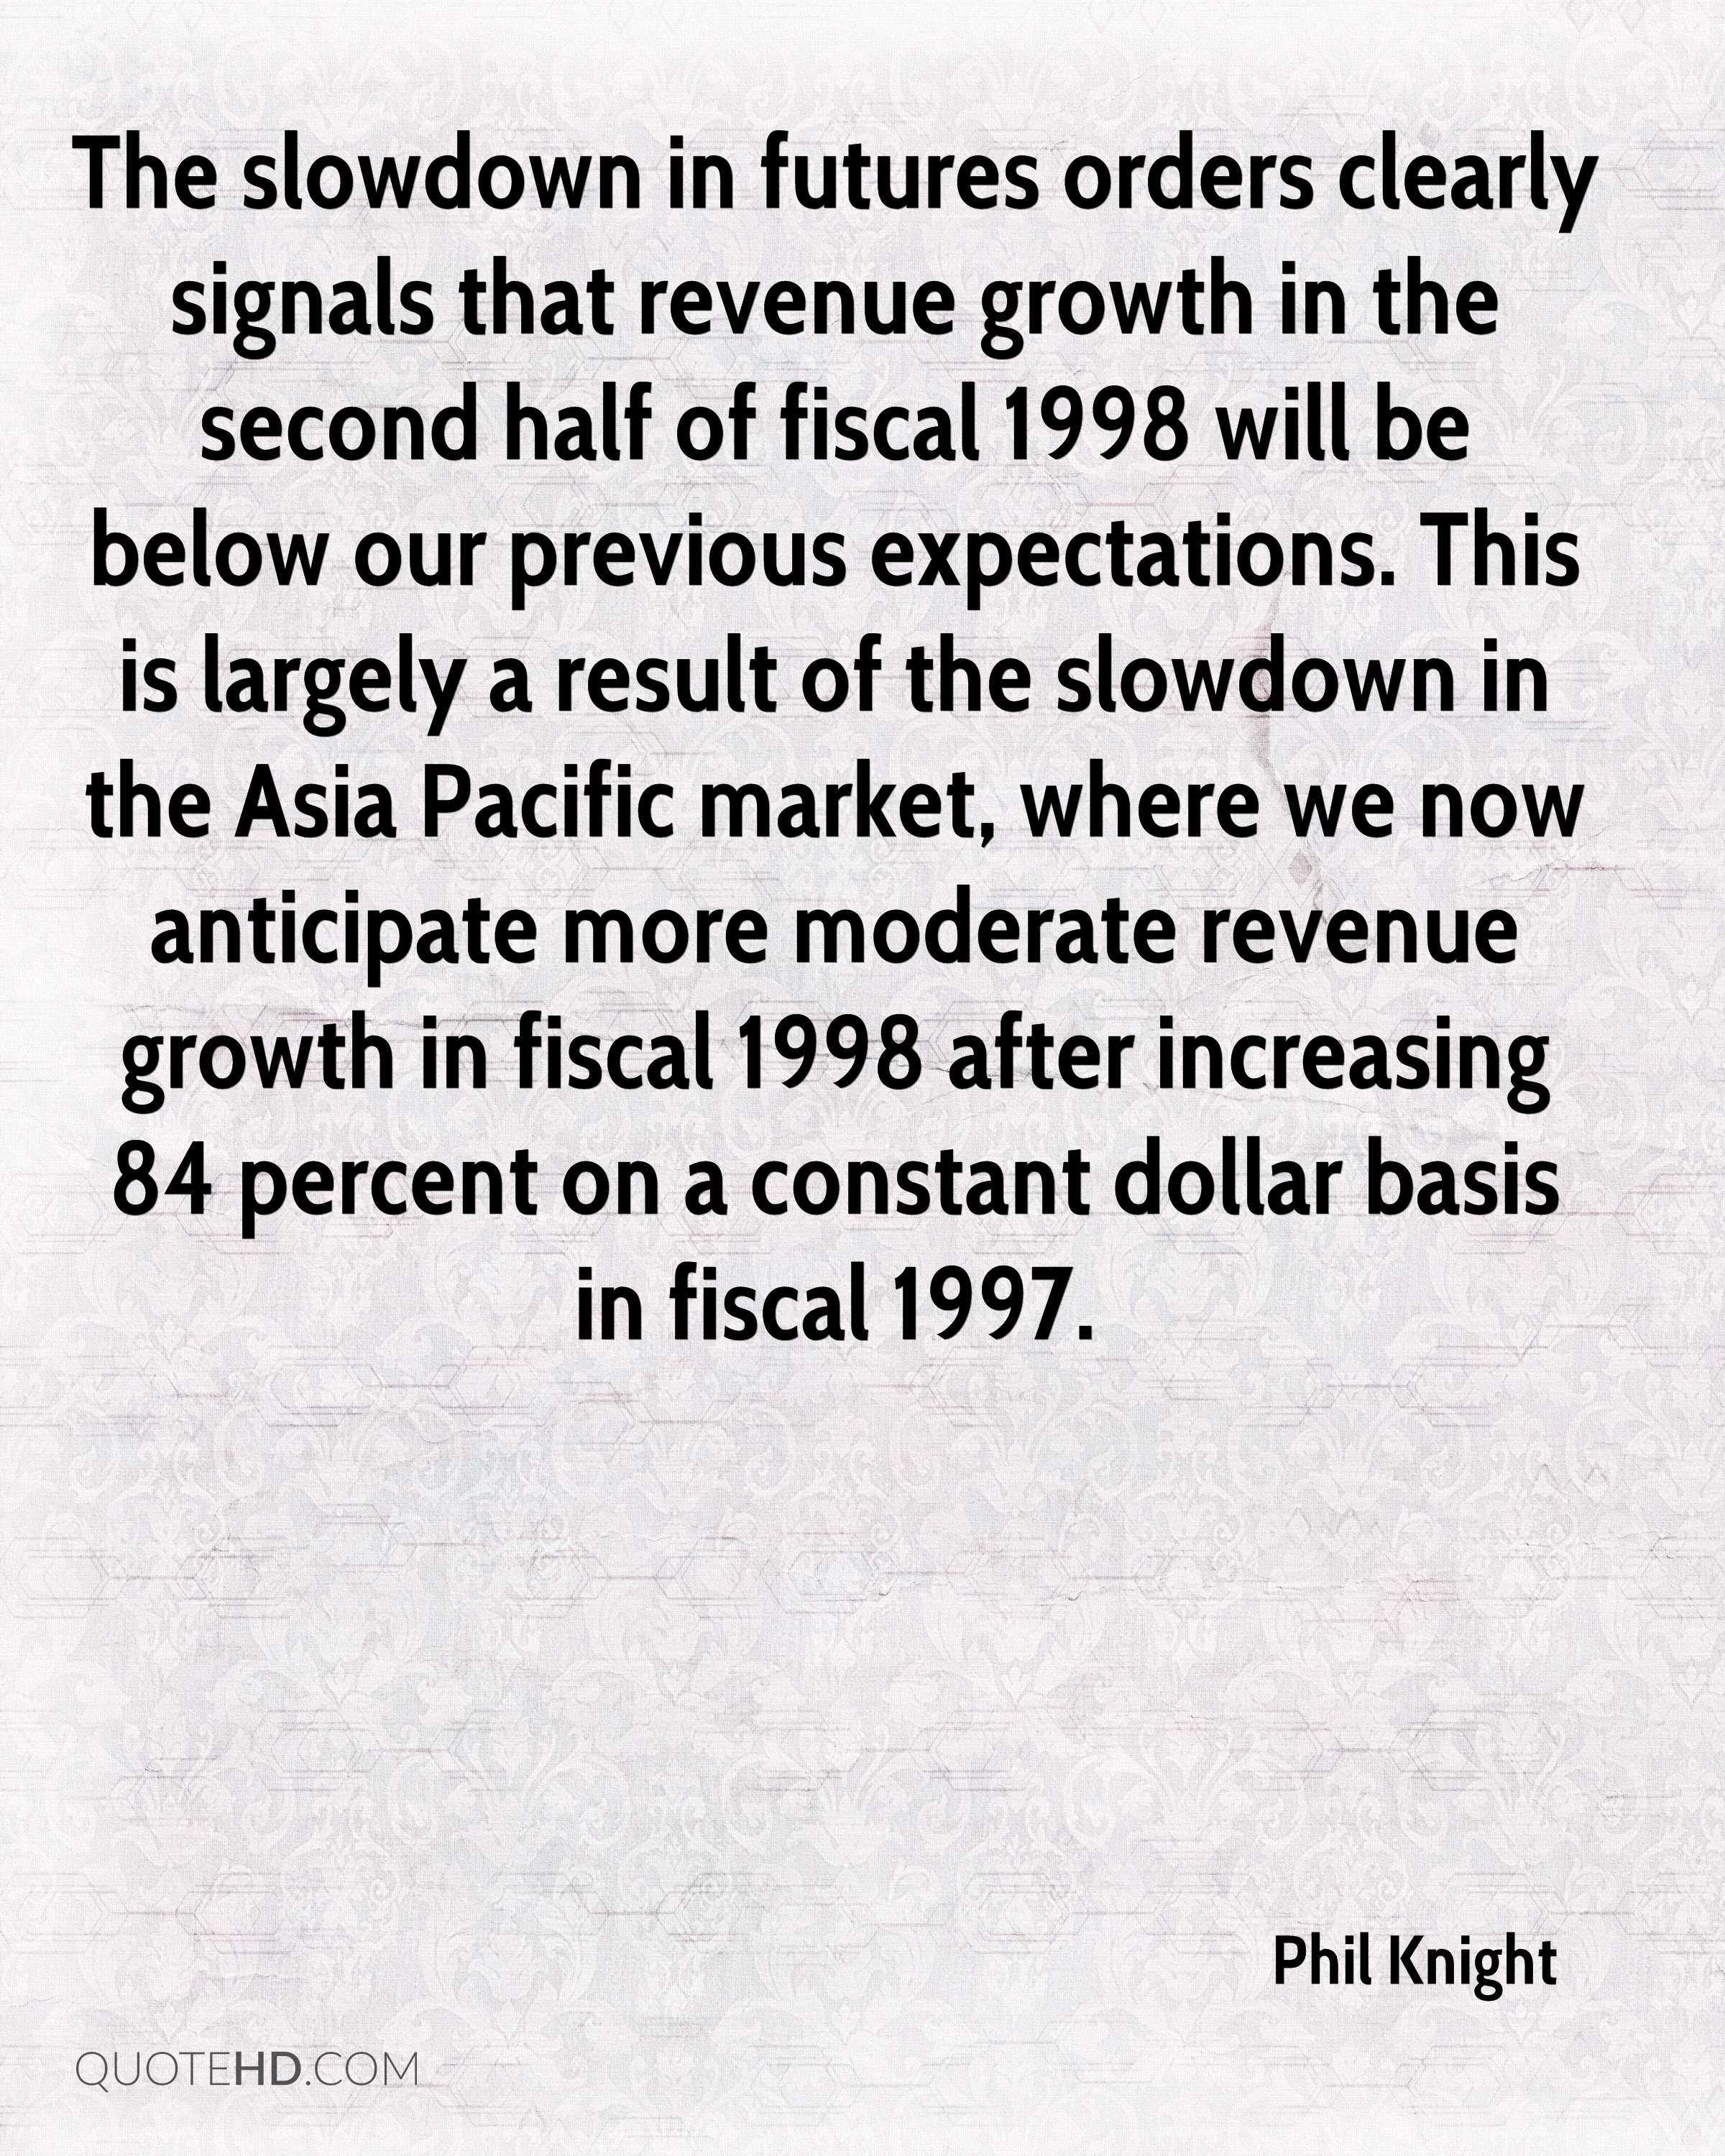 The slowdown in futures orders clearly signals that revenue growth in the second half of fiscal 1998 will be below our previous expectations. This is largely a result of the slowdown in the Asia Pacific market, where we now anticipate more moderate revenue growth in fiscal 1998 after increasing 84 percent on a constant dollar basis in fiscal 1997.